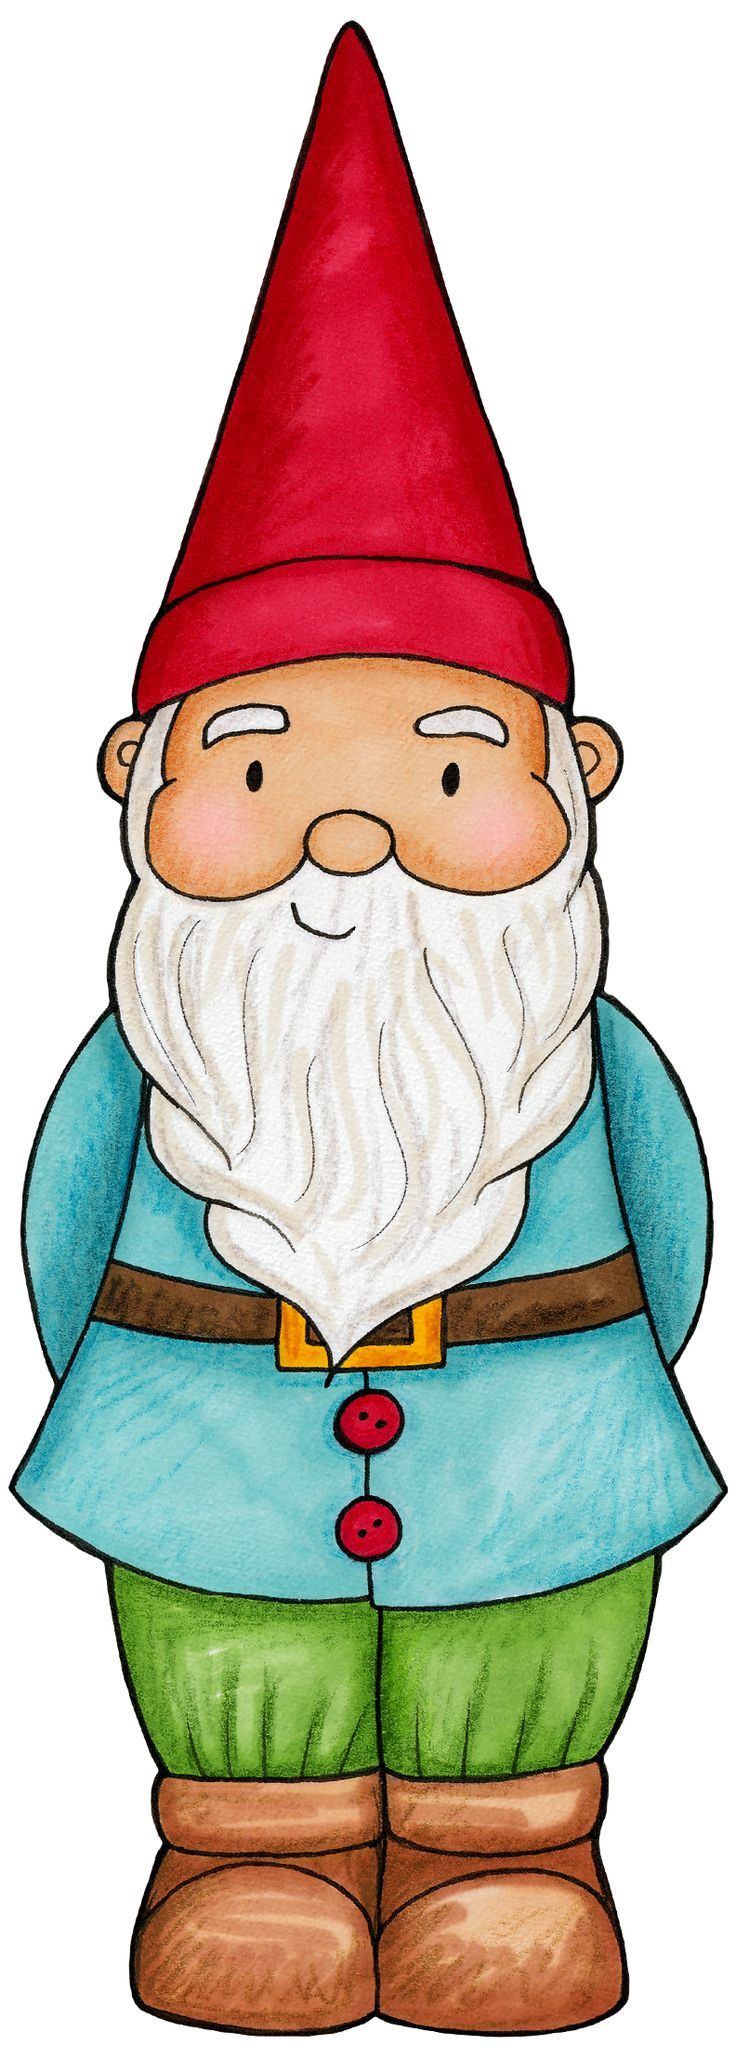 Garden Gnome clipart #4, Download drawings